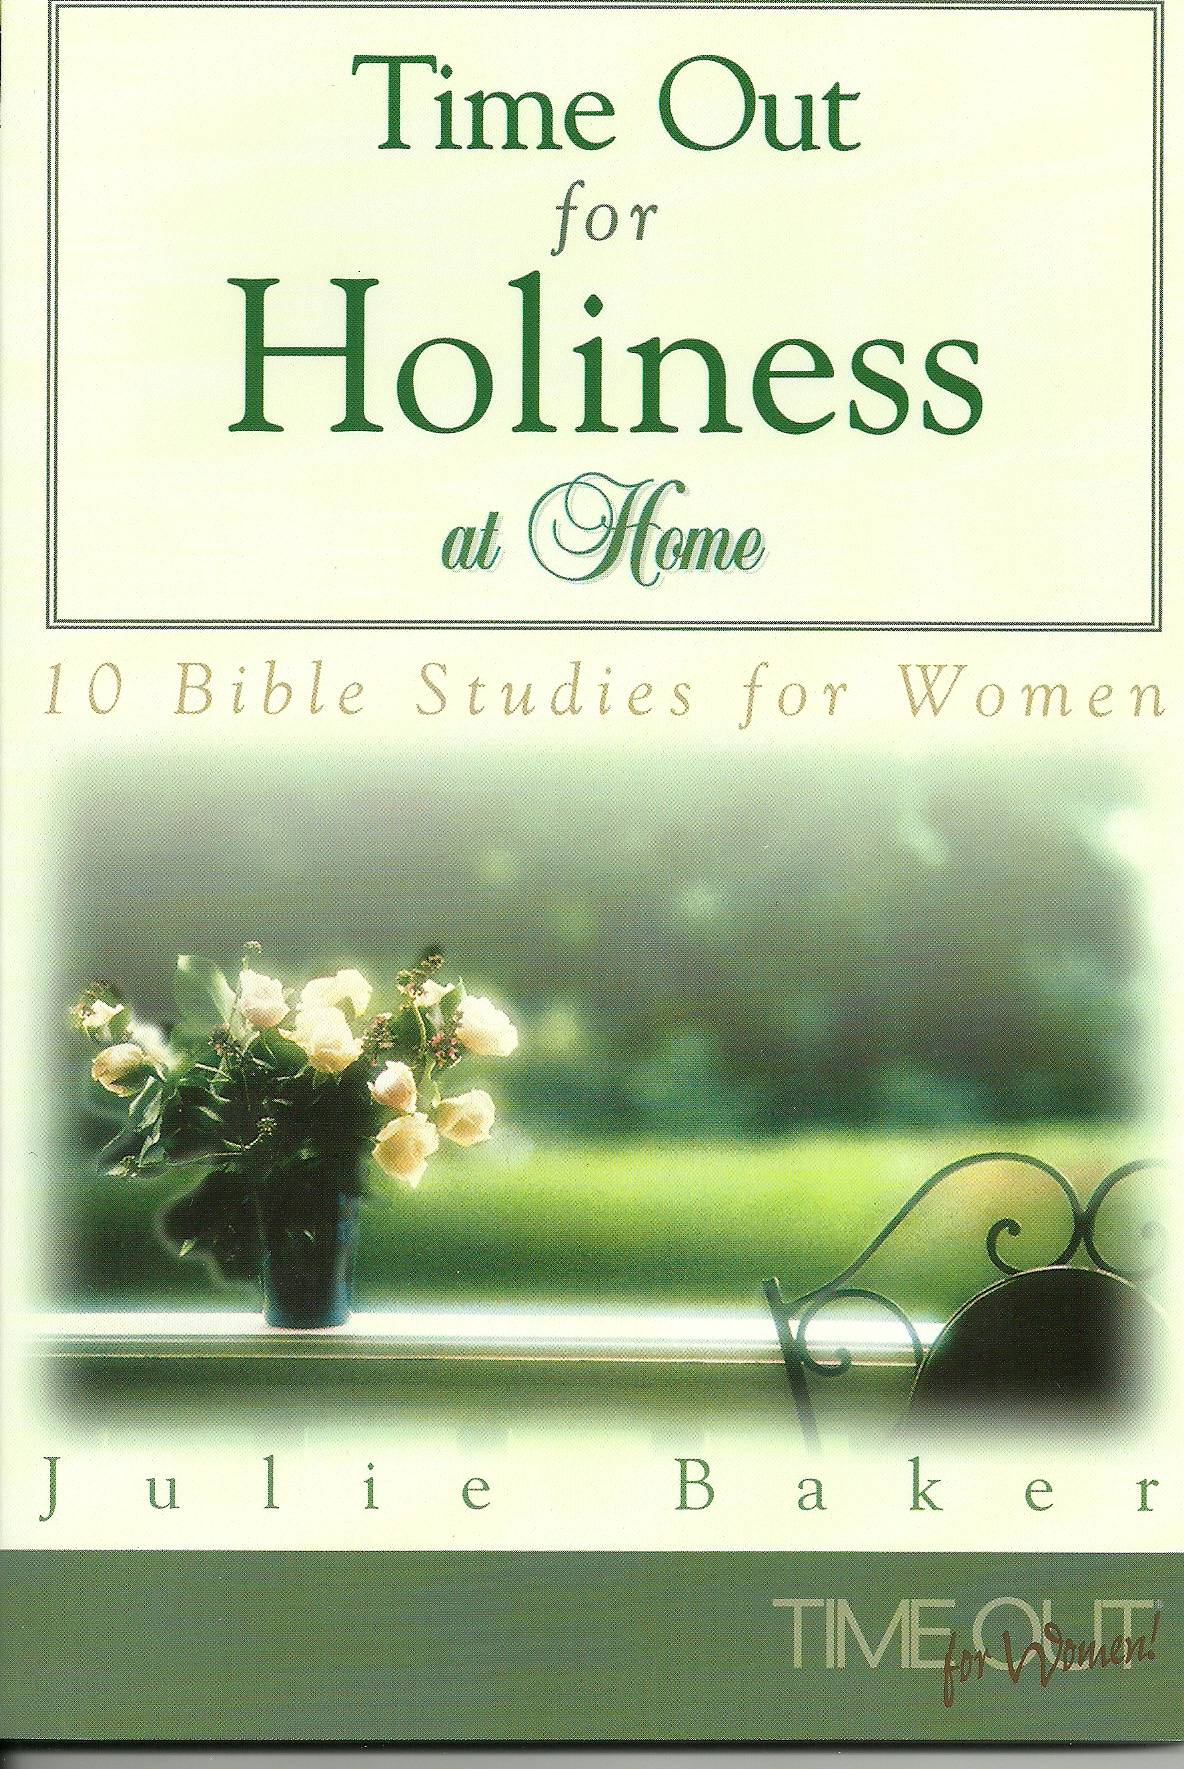 TimeOut for Holiness at Home